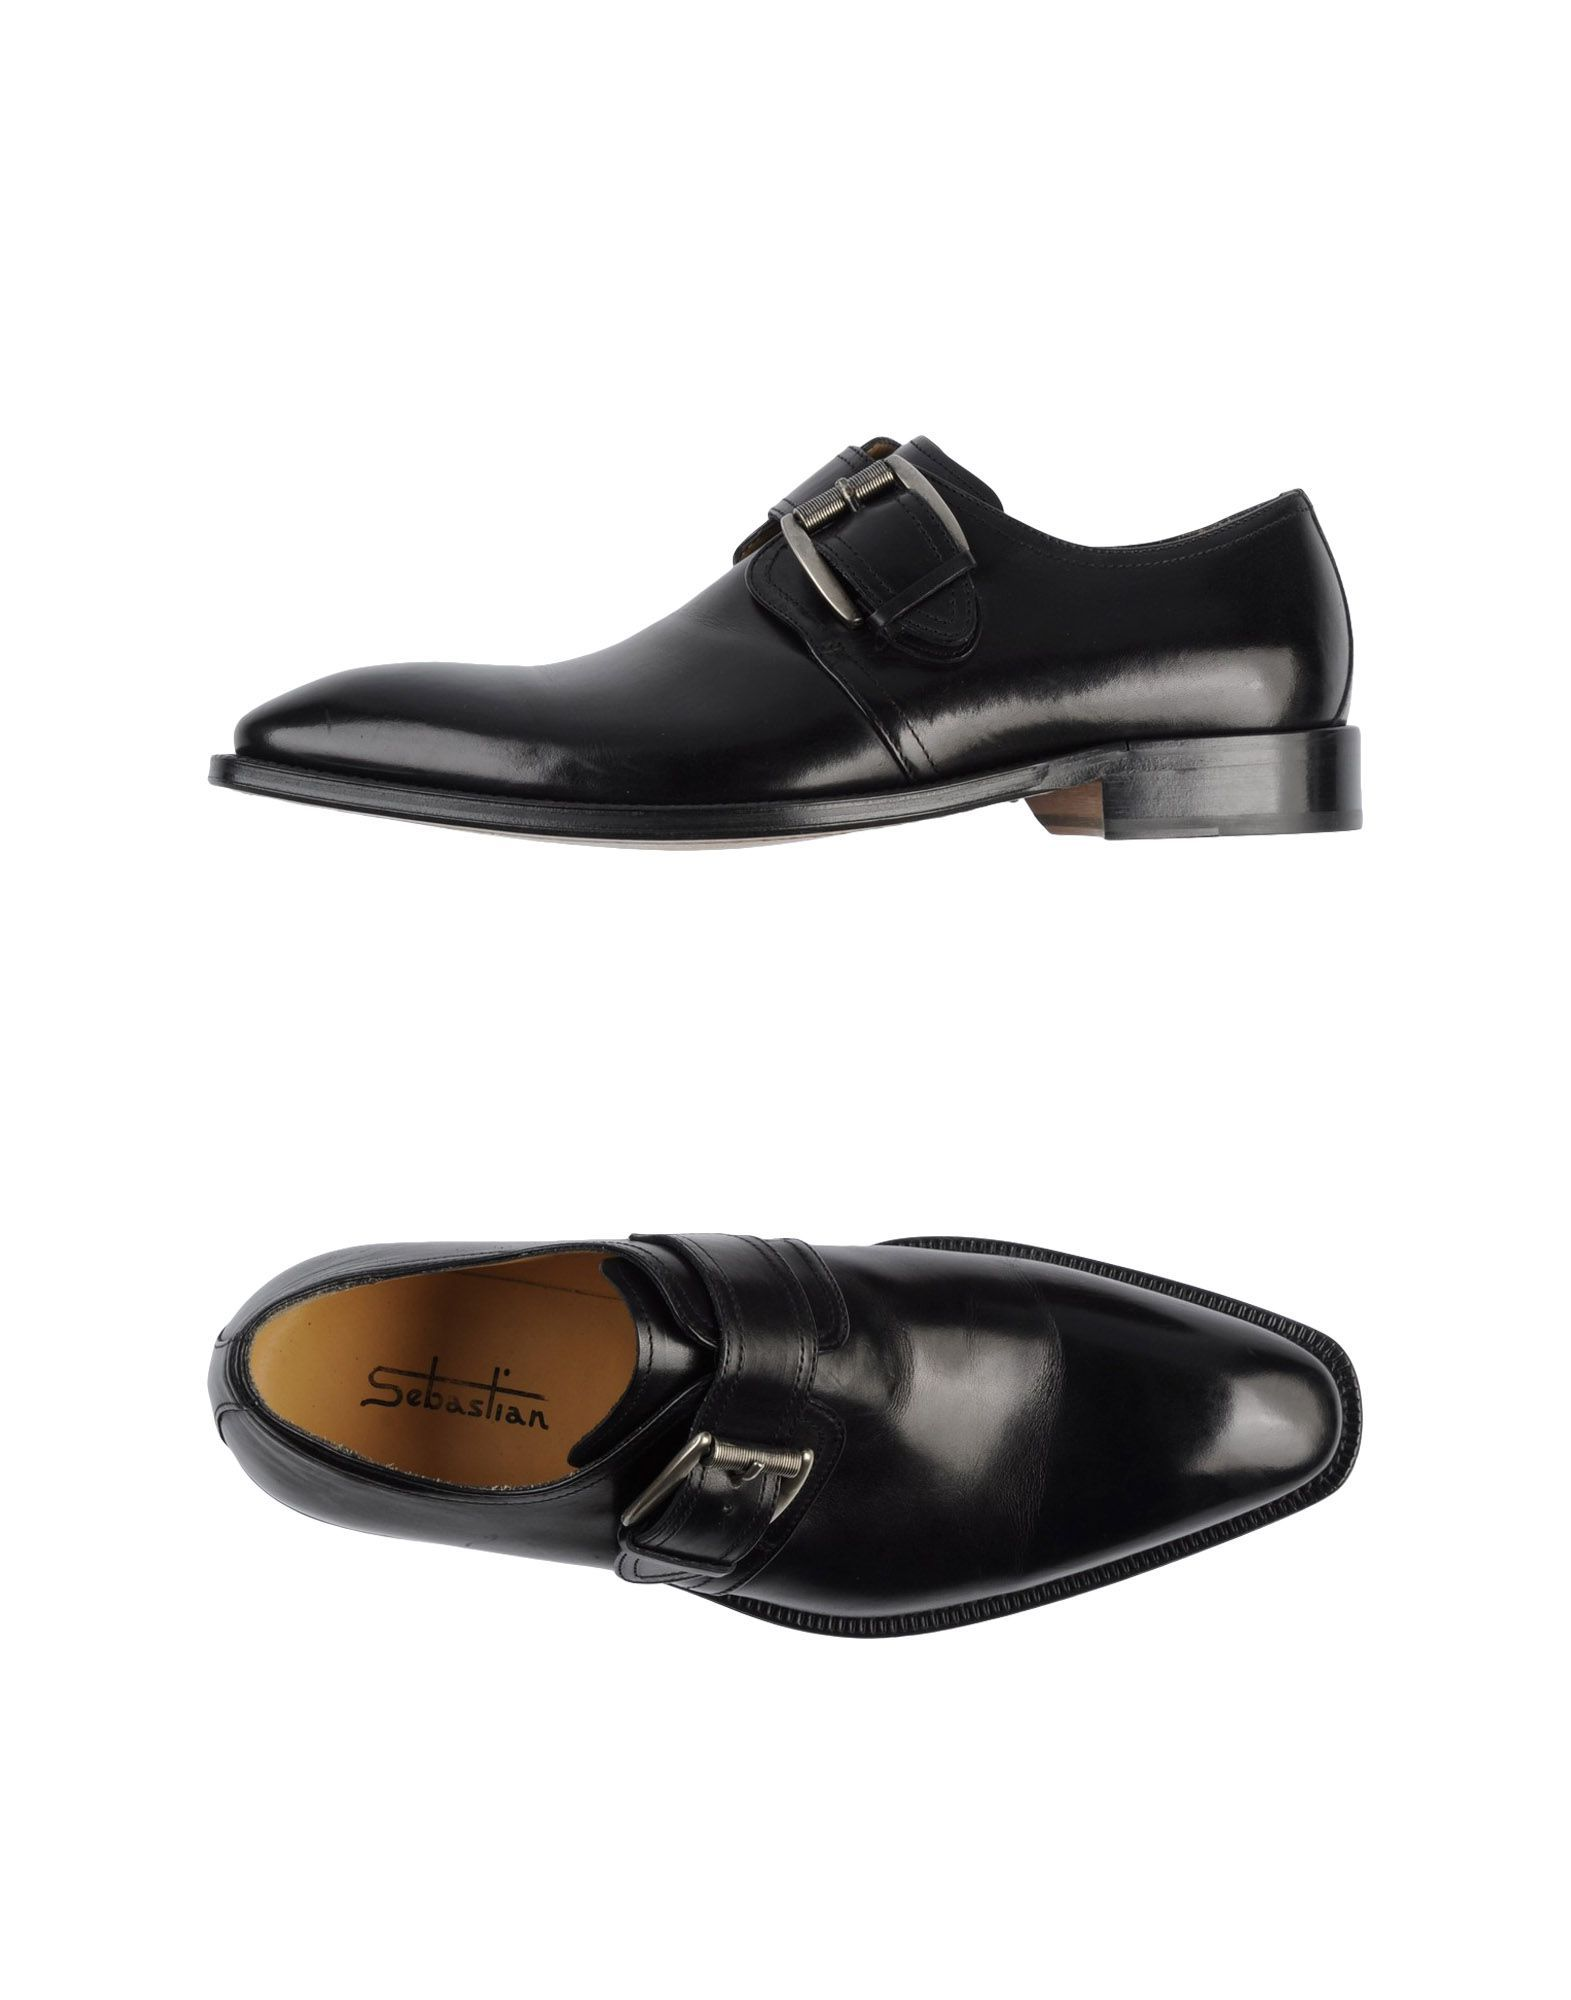 best prices for sale best store to get SEBASTIAN Loafers buy cheap outlet outlet choice discount shop offer s0jyep